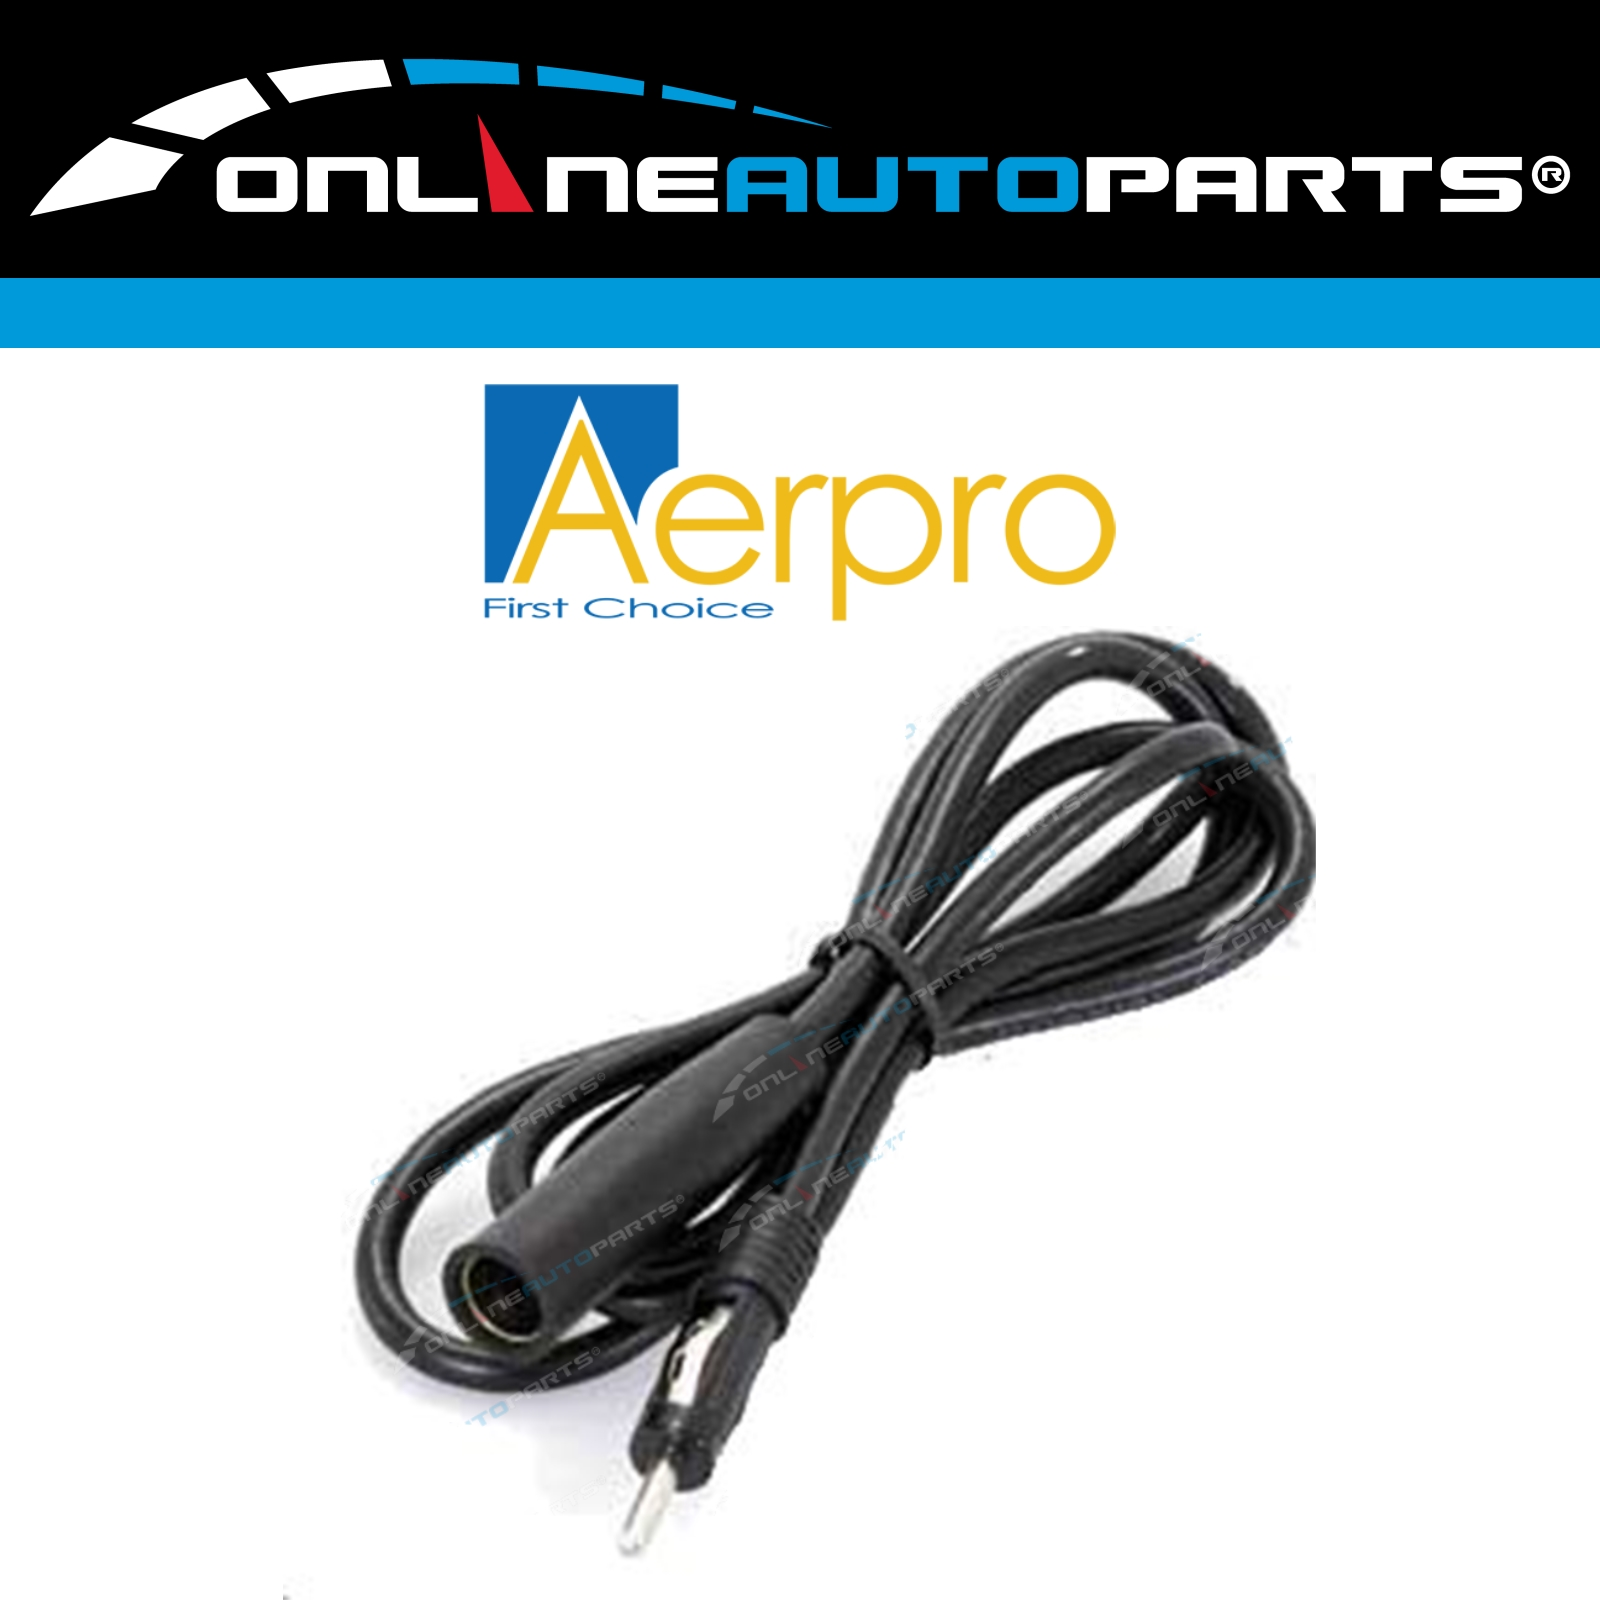 1 meter Car Antenna Extension Cable Auto Radio Stereo Aerial Lead 1m Long